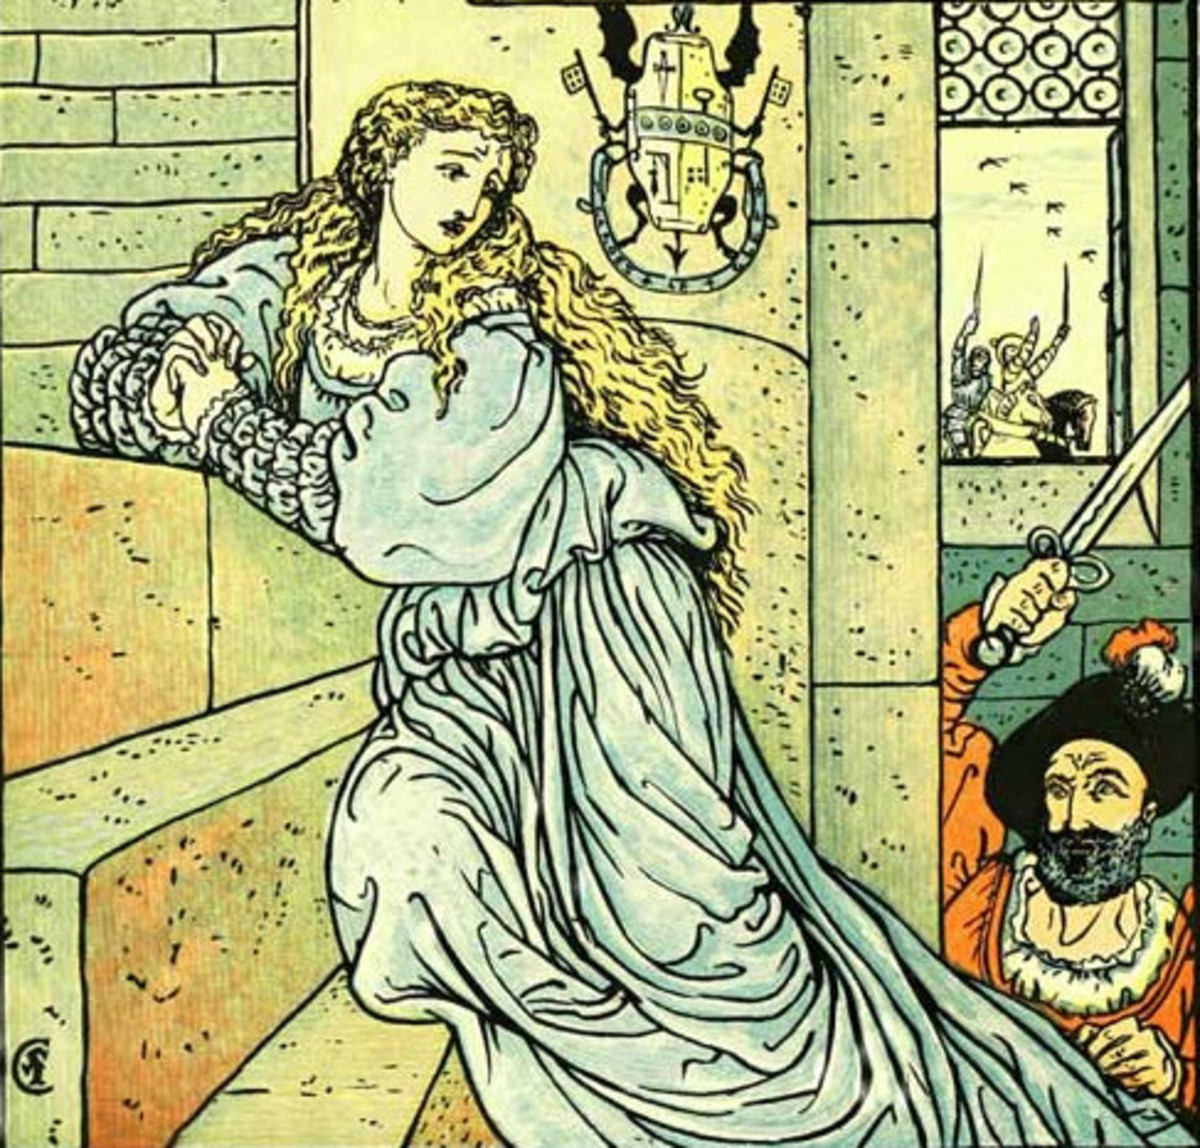 Bluebeard chasing his wife (picture by Walter Crane)